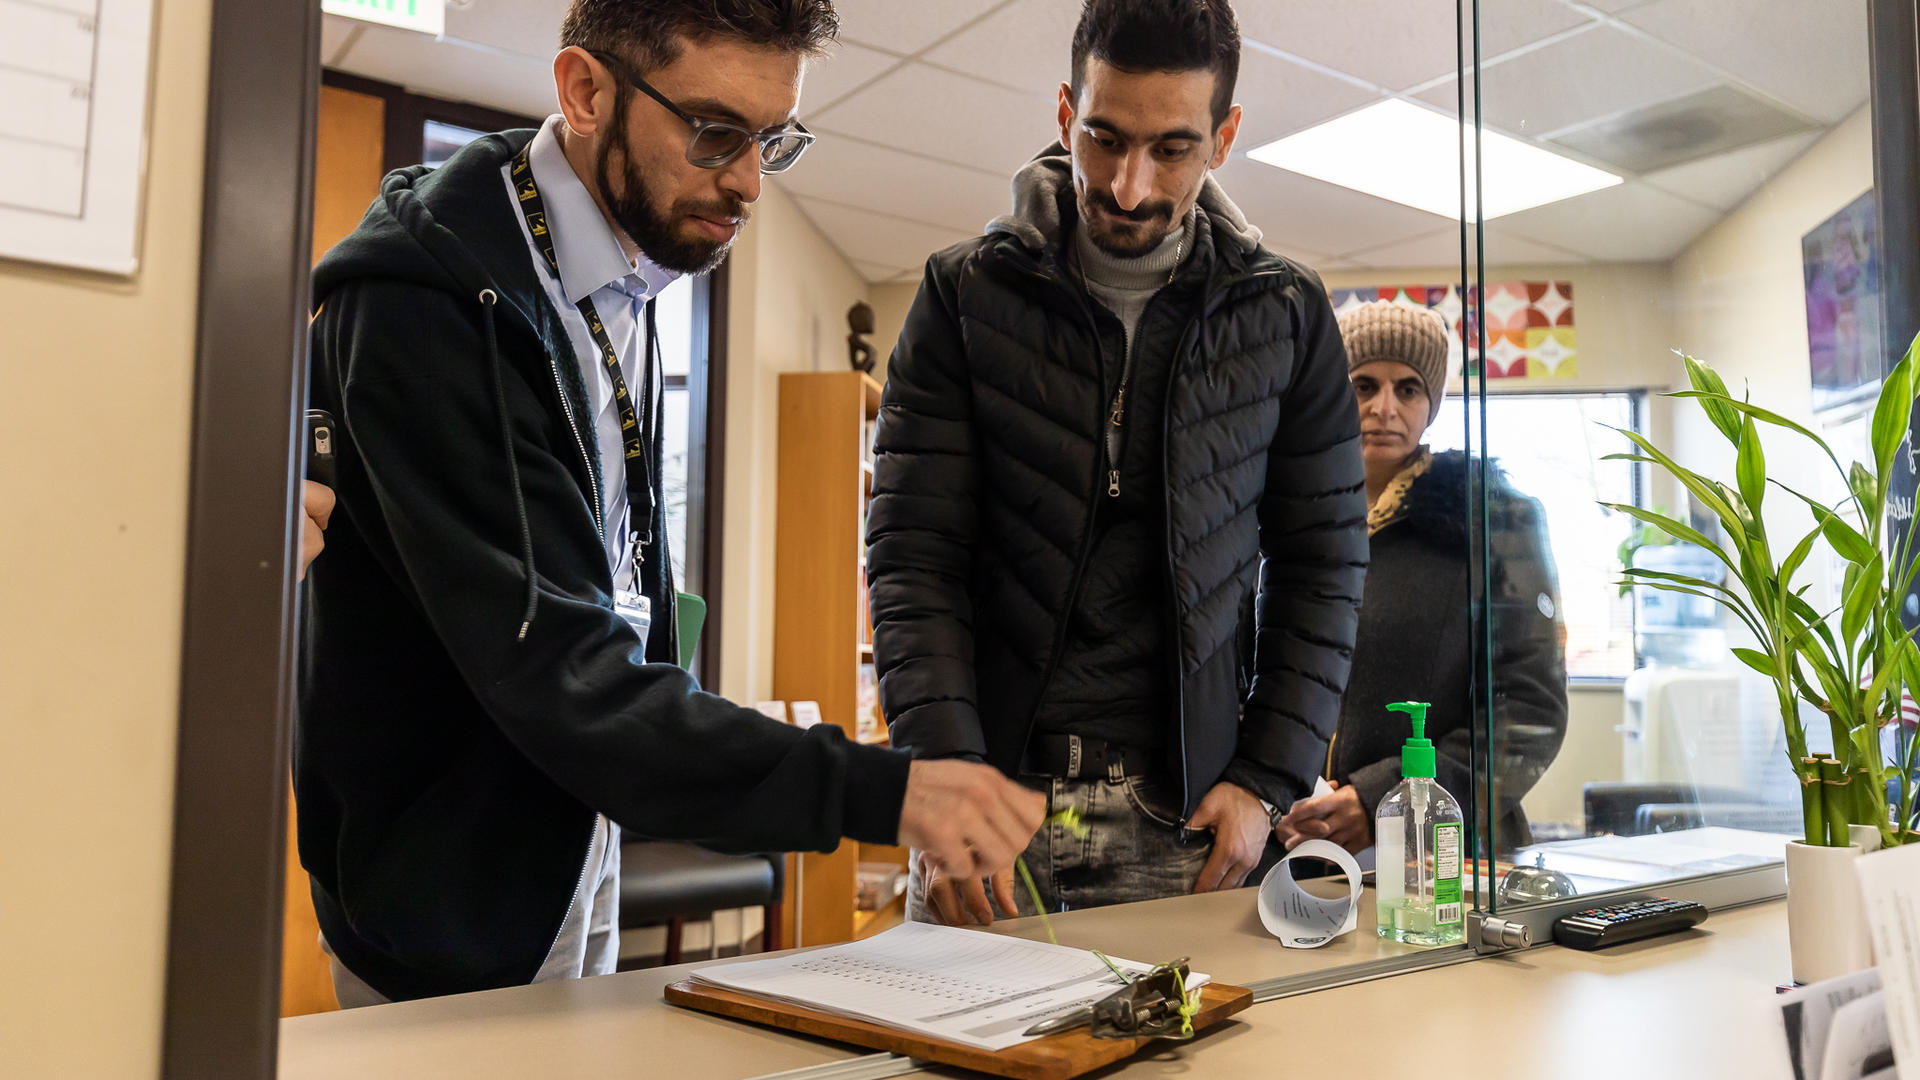 IRC caseworker Qais Nayab and Iranian refugees Sirvan and Saltanat Moradi at IRC offices located in SeaTac, WA